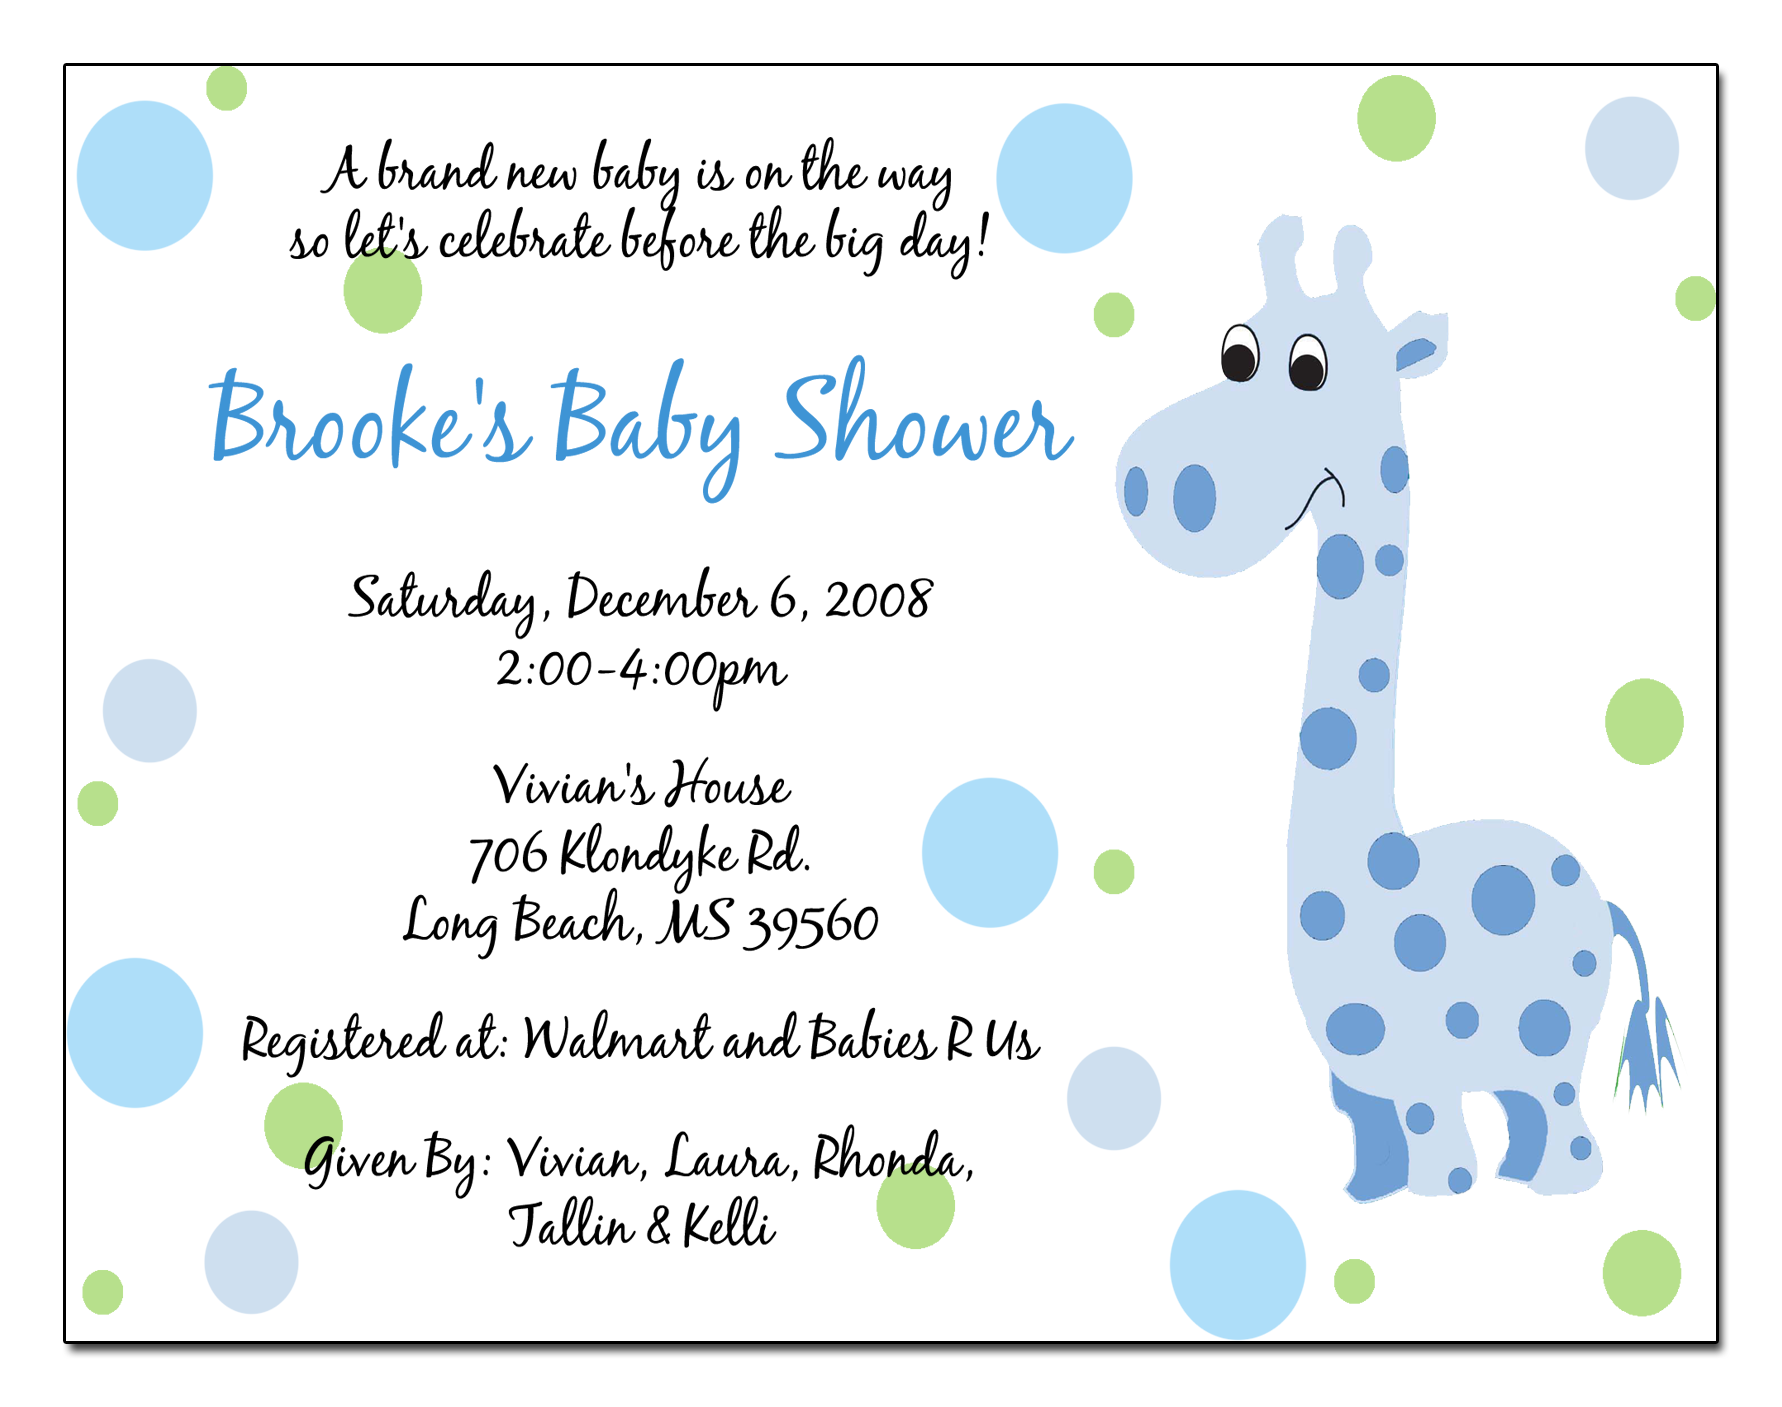 Collection of hundreds of free birthday invitation picture from all giraffe baby shower invitation wording light blue and black text bubble baby shower invite of cute baby shower invitation wording templates for your filmwisefo Image collections